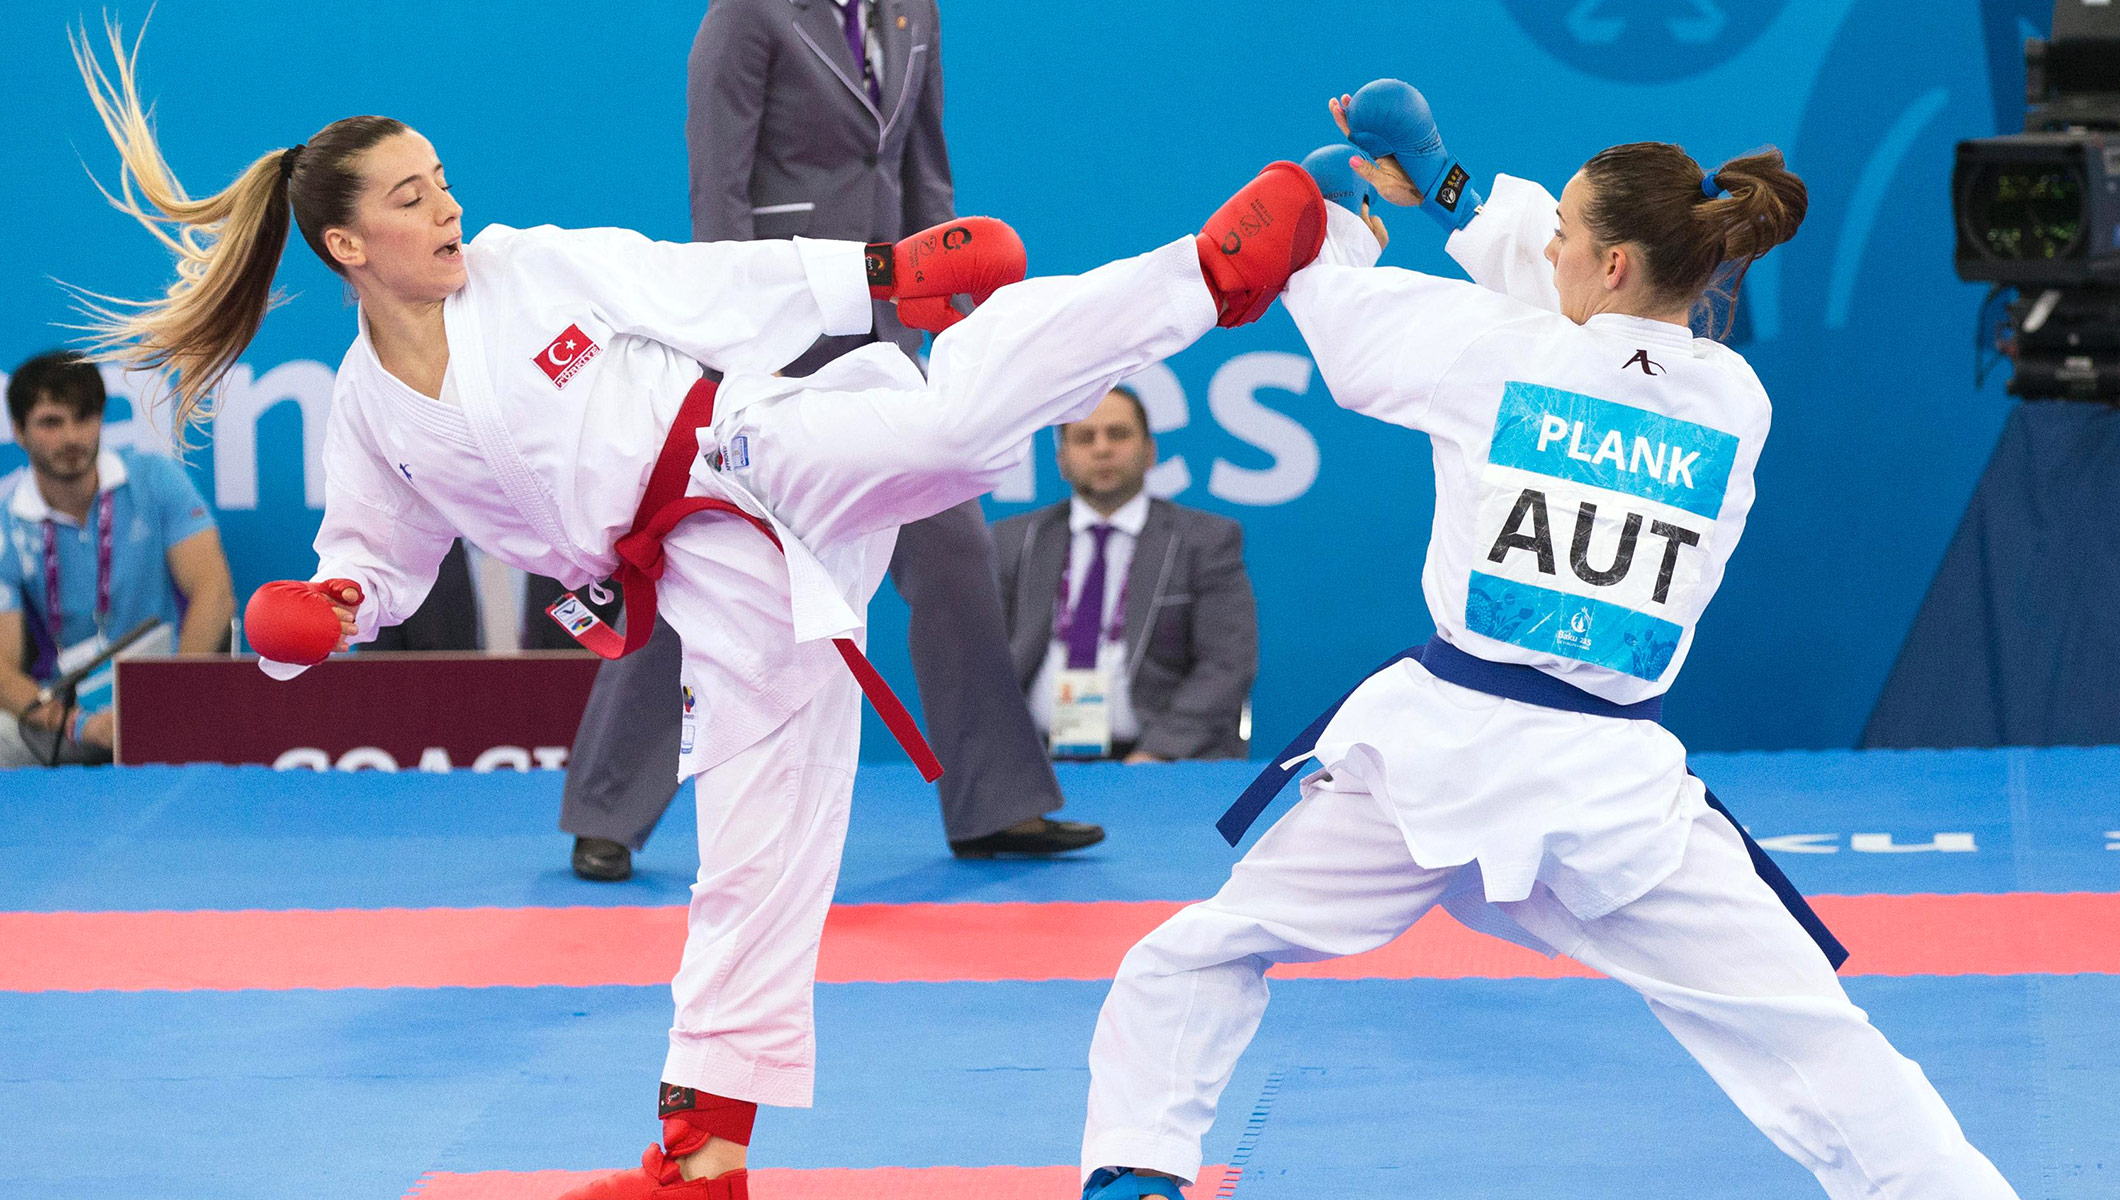 Five things you need to know about… karate! - Olympic News